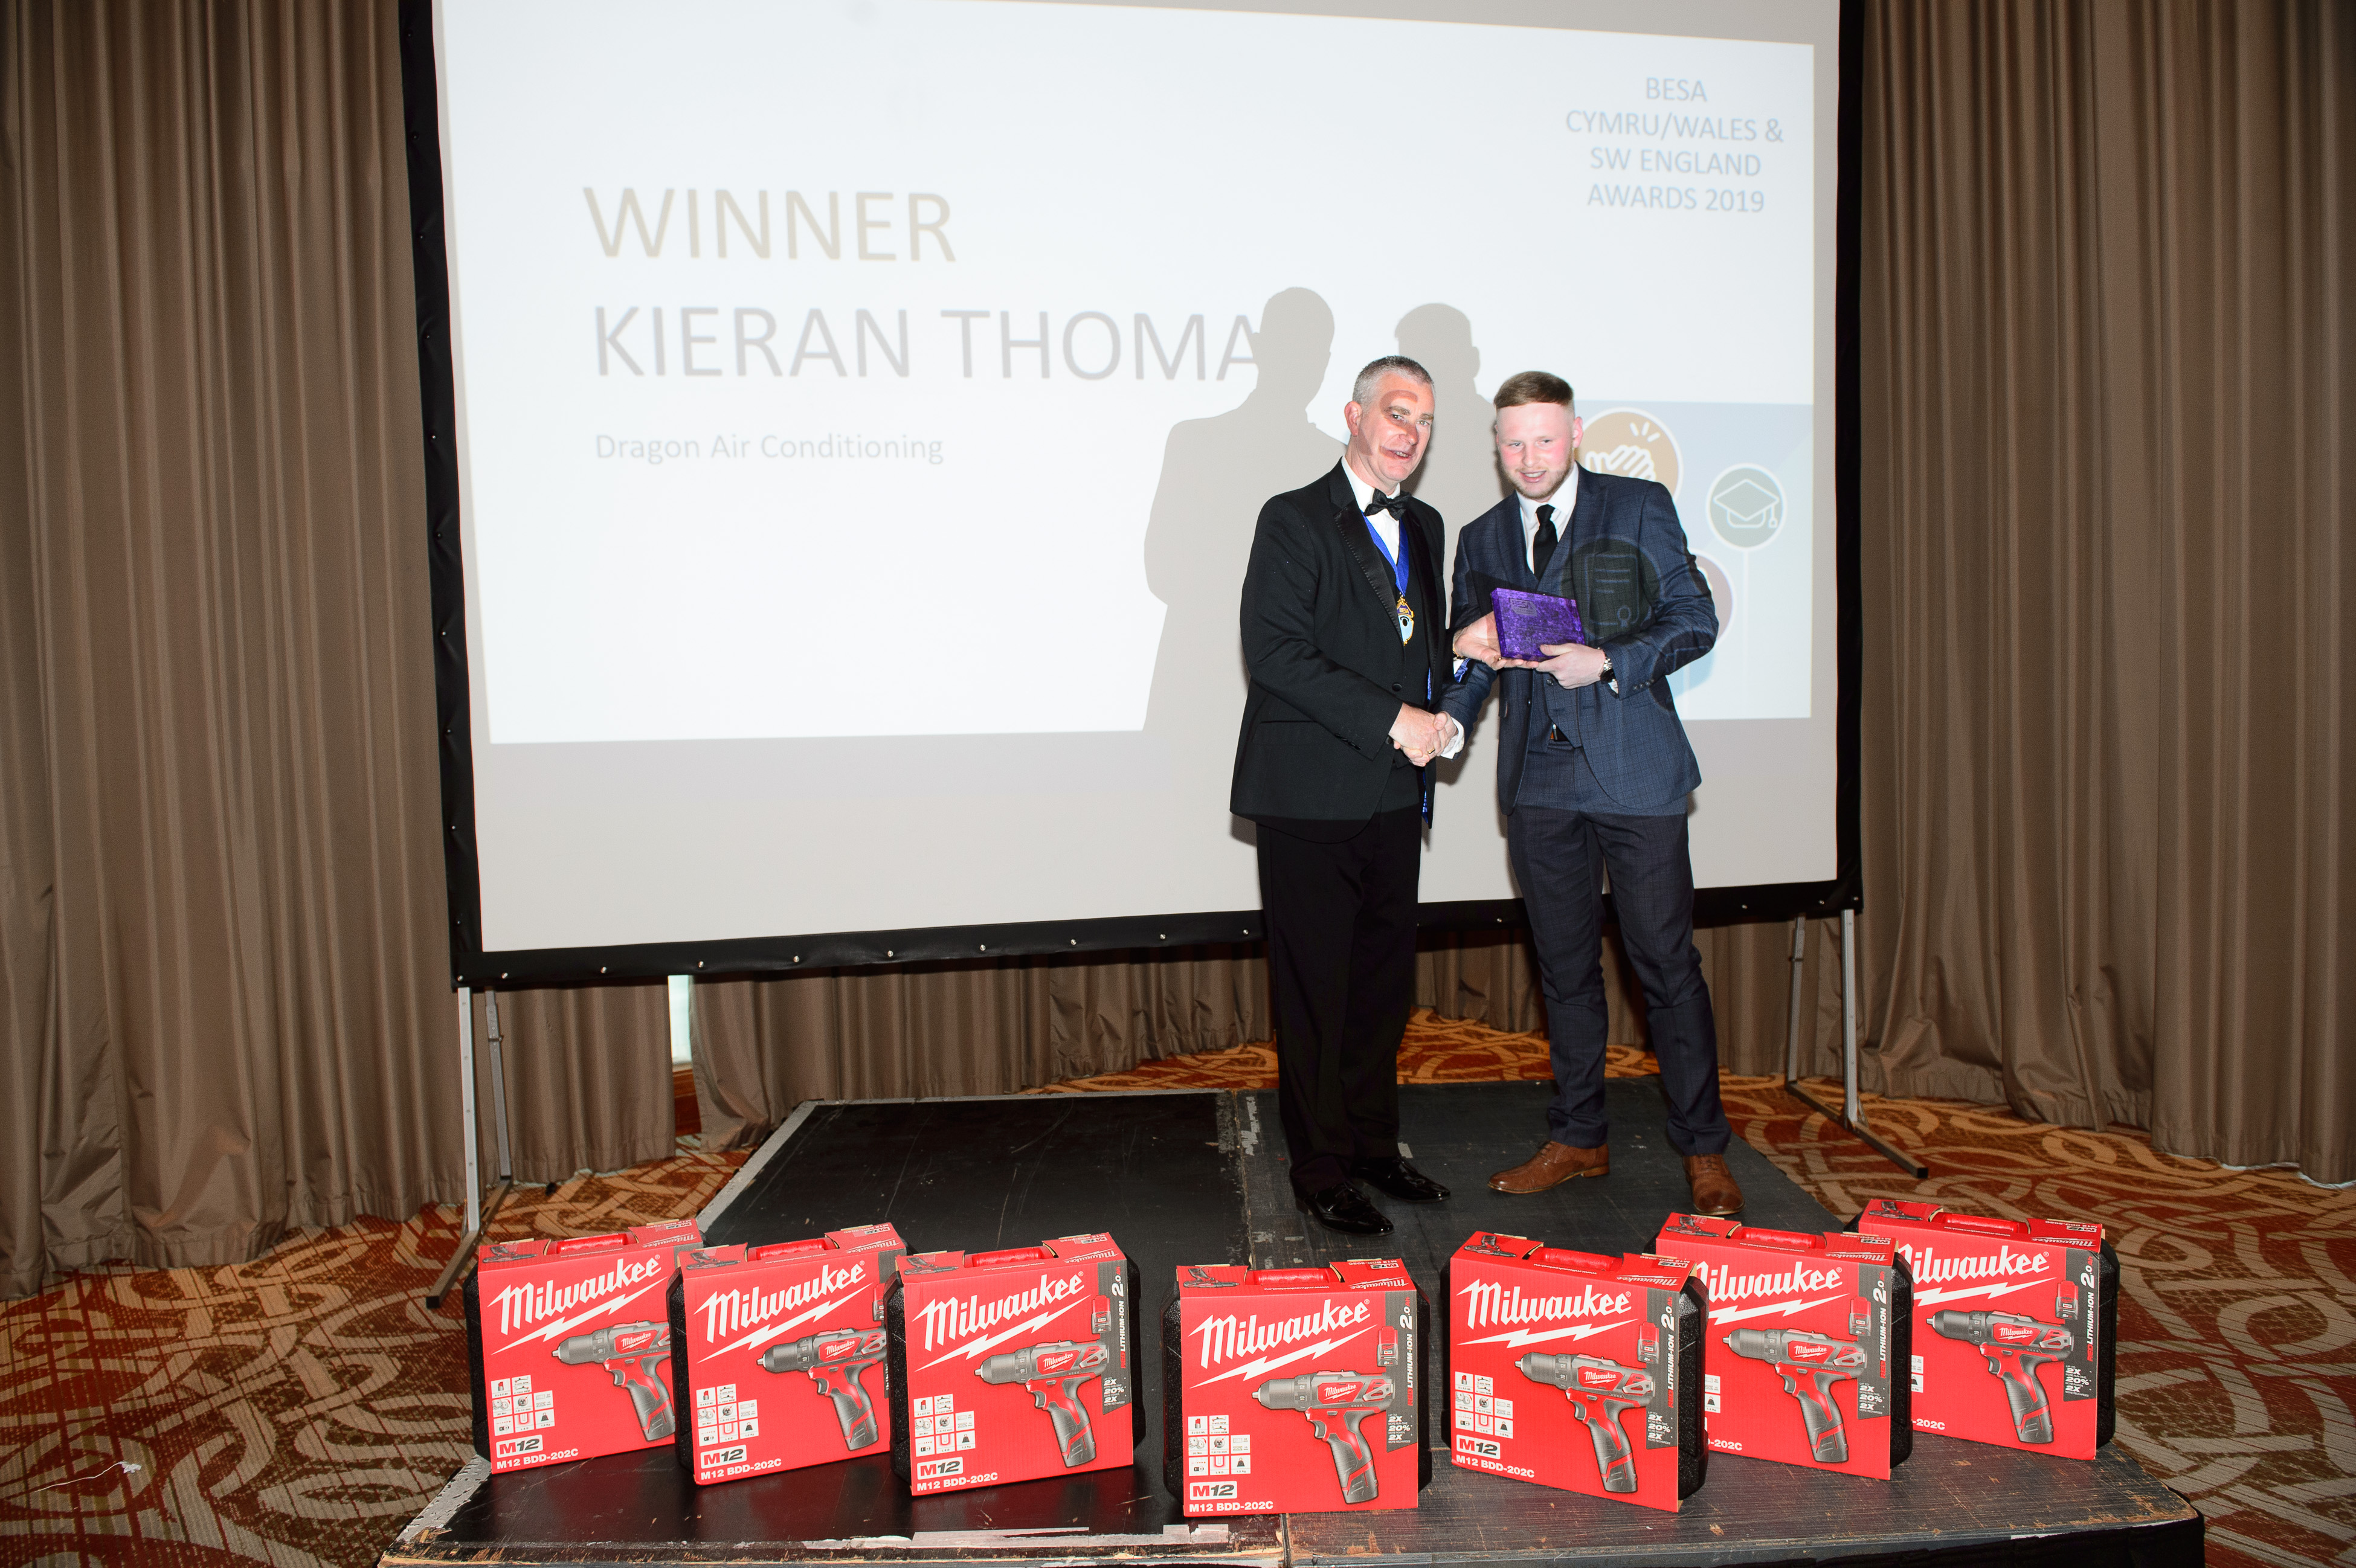 Refrigeration & Air Conditioning Apprentice of the Year, Kieran Thomas, Dragon Air Conditioning